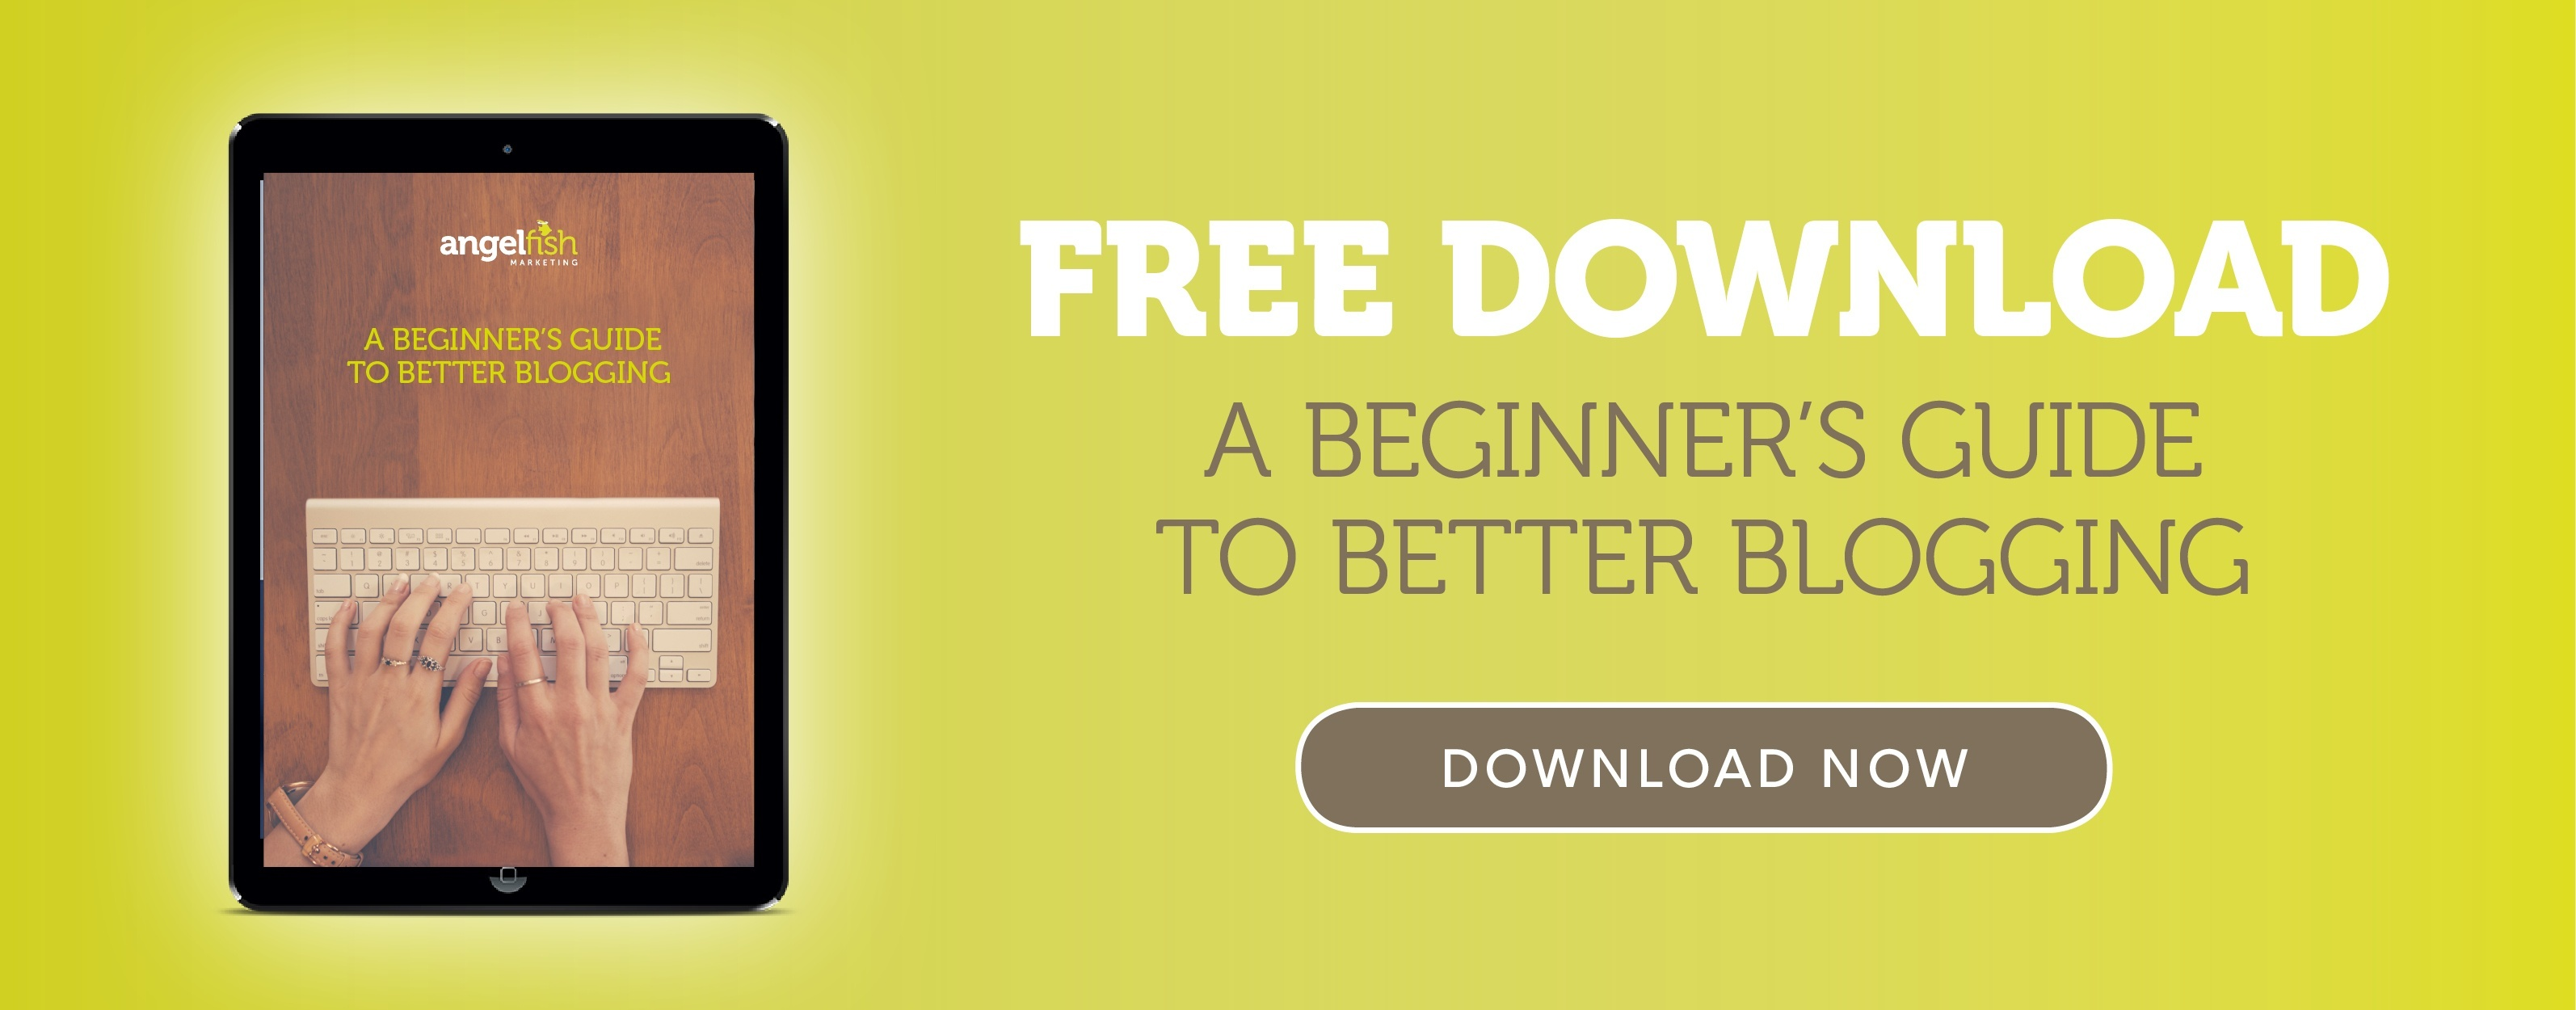 Free Download - A beginners guide to better blogging